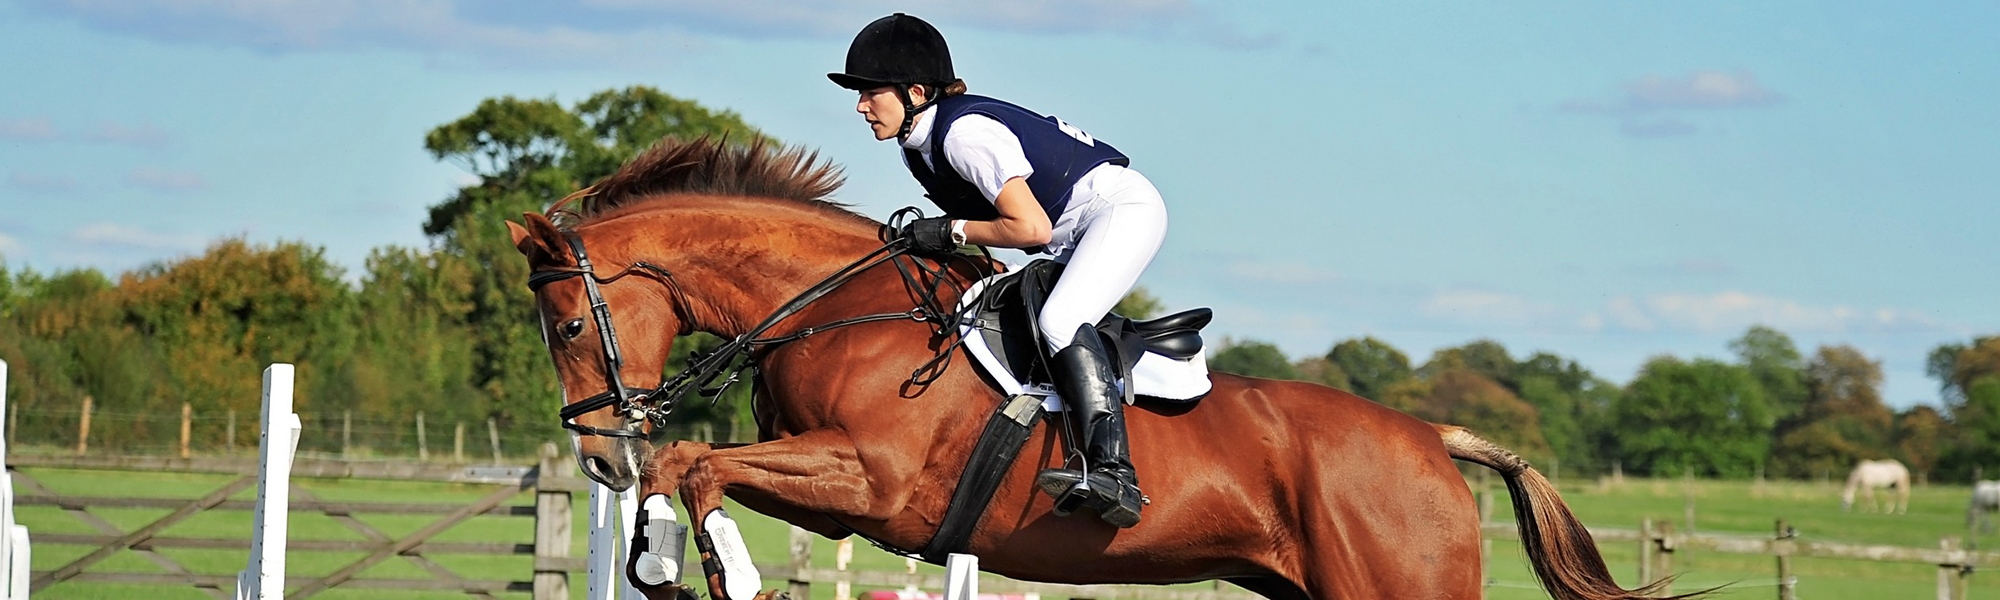 Jumping shows